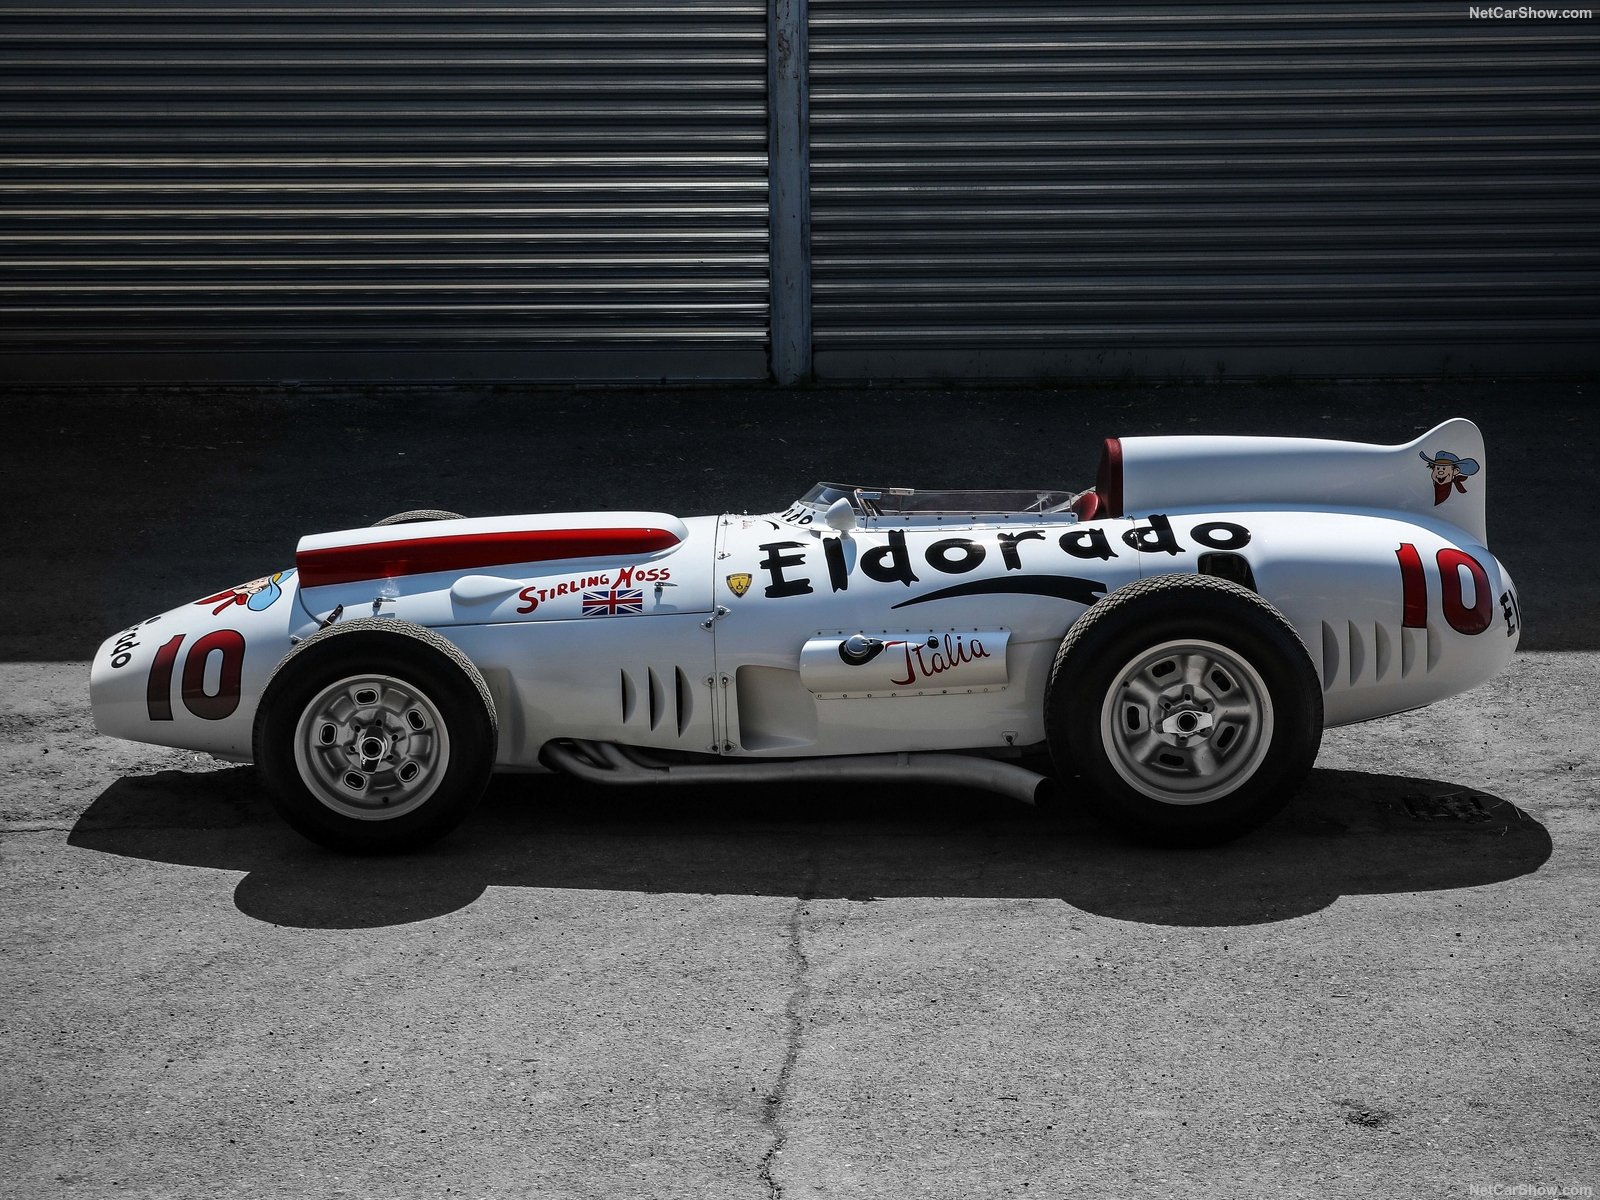 Maserati Eldorado Racecar photo 189481